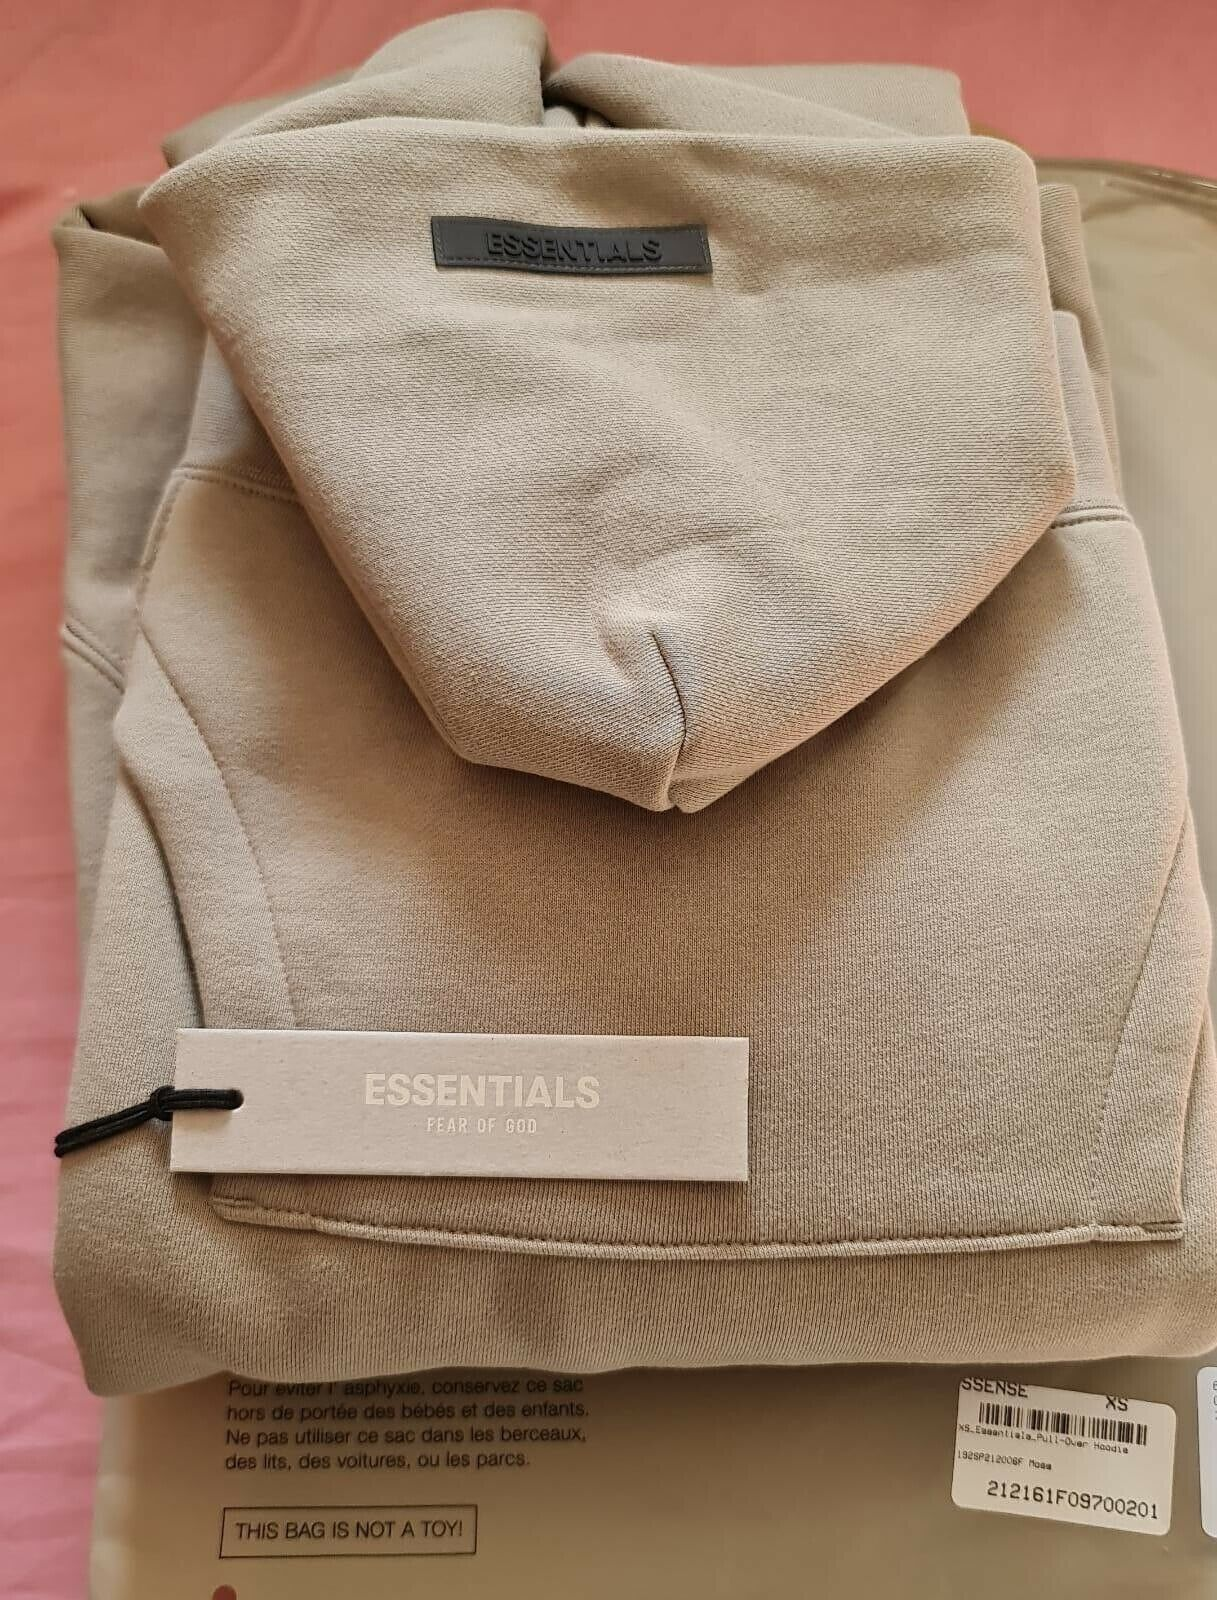 🔥Fear Of God Essentials 2021 Moss/Grey Hoodie Size Small🔥